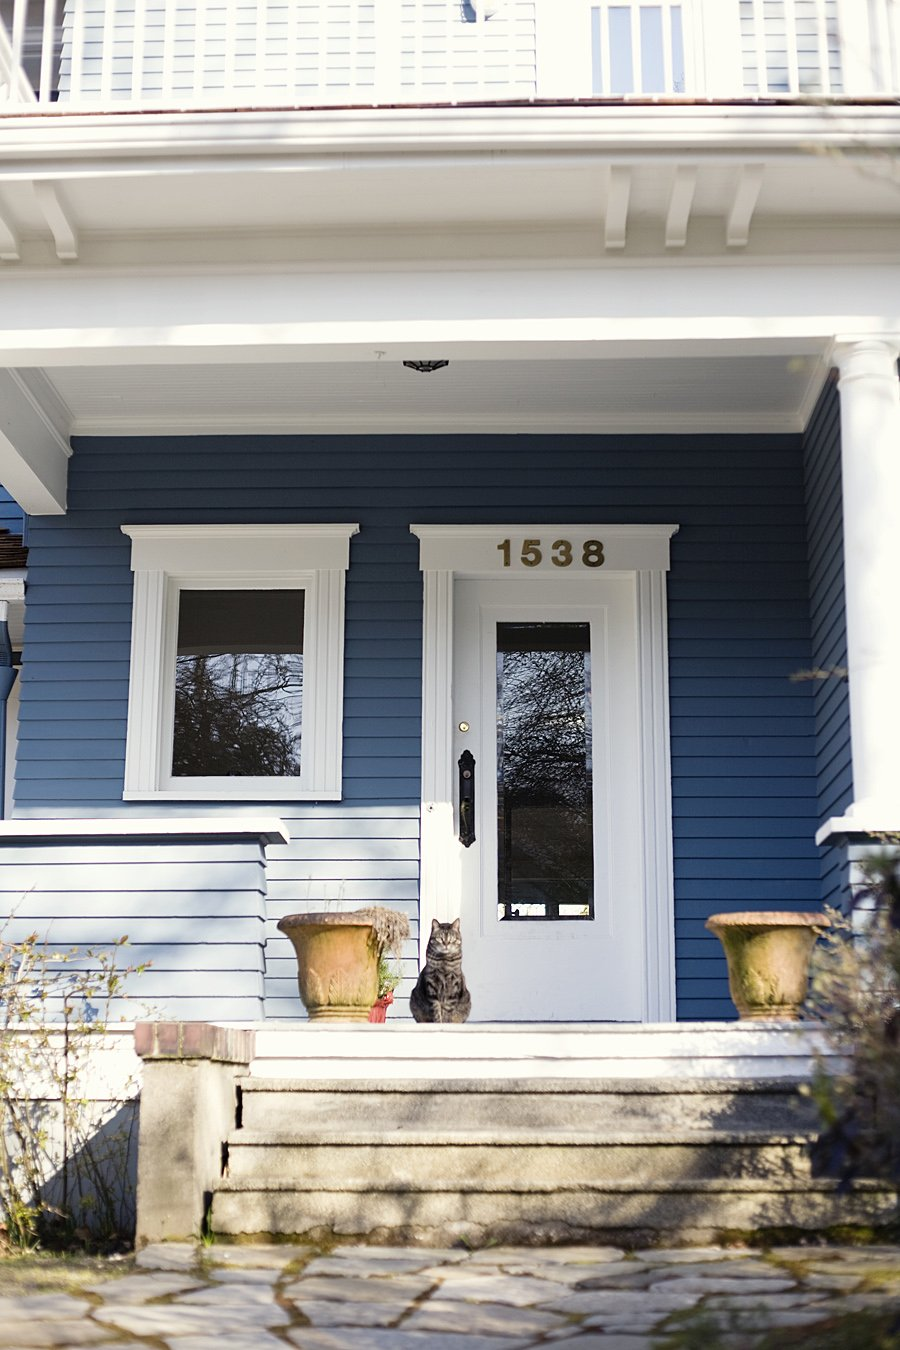 Blue house with cat